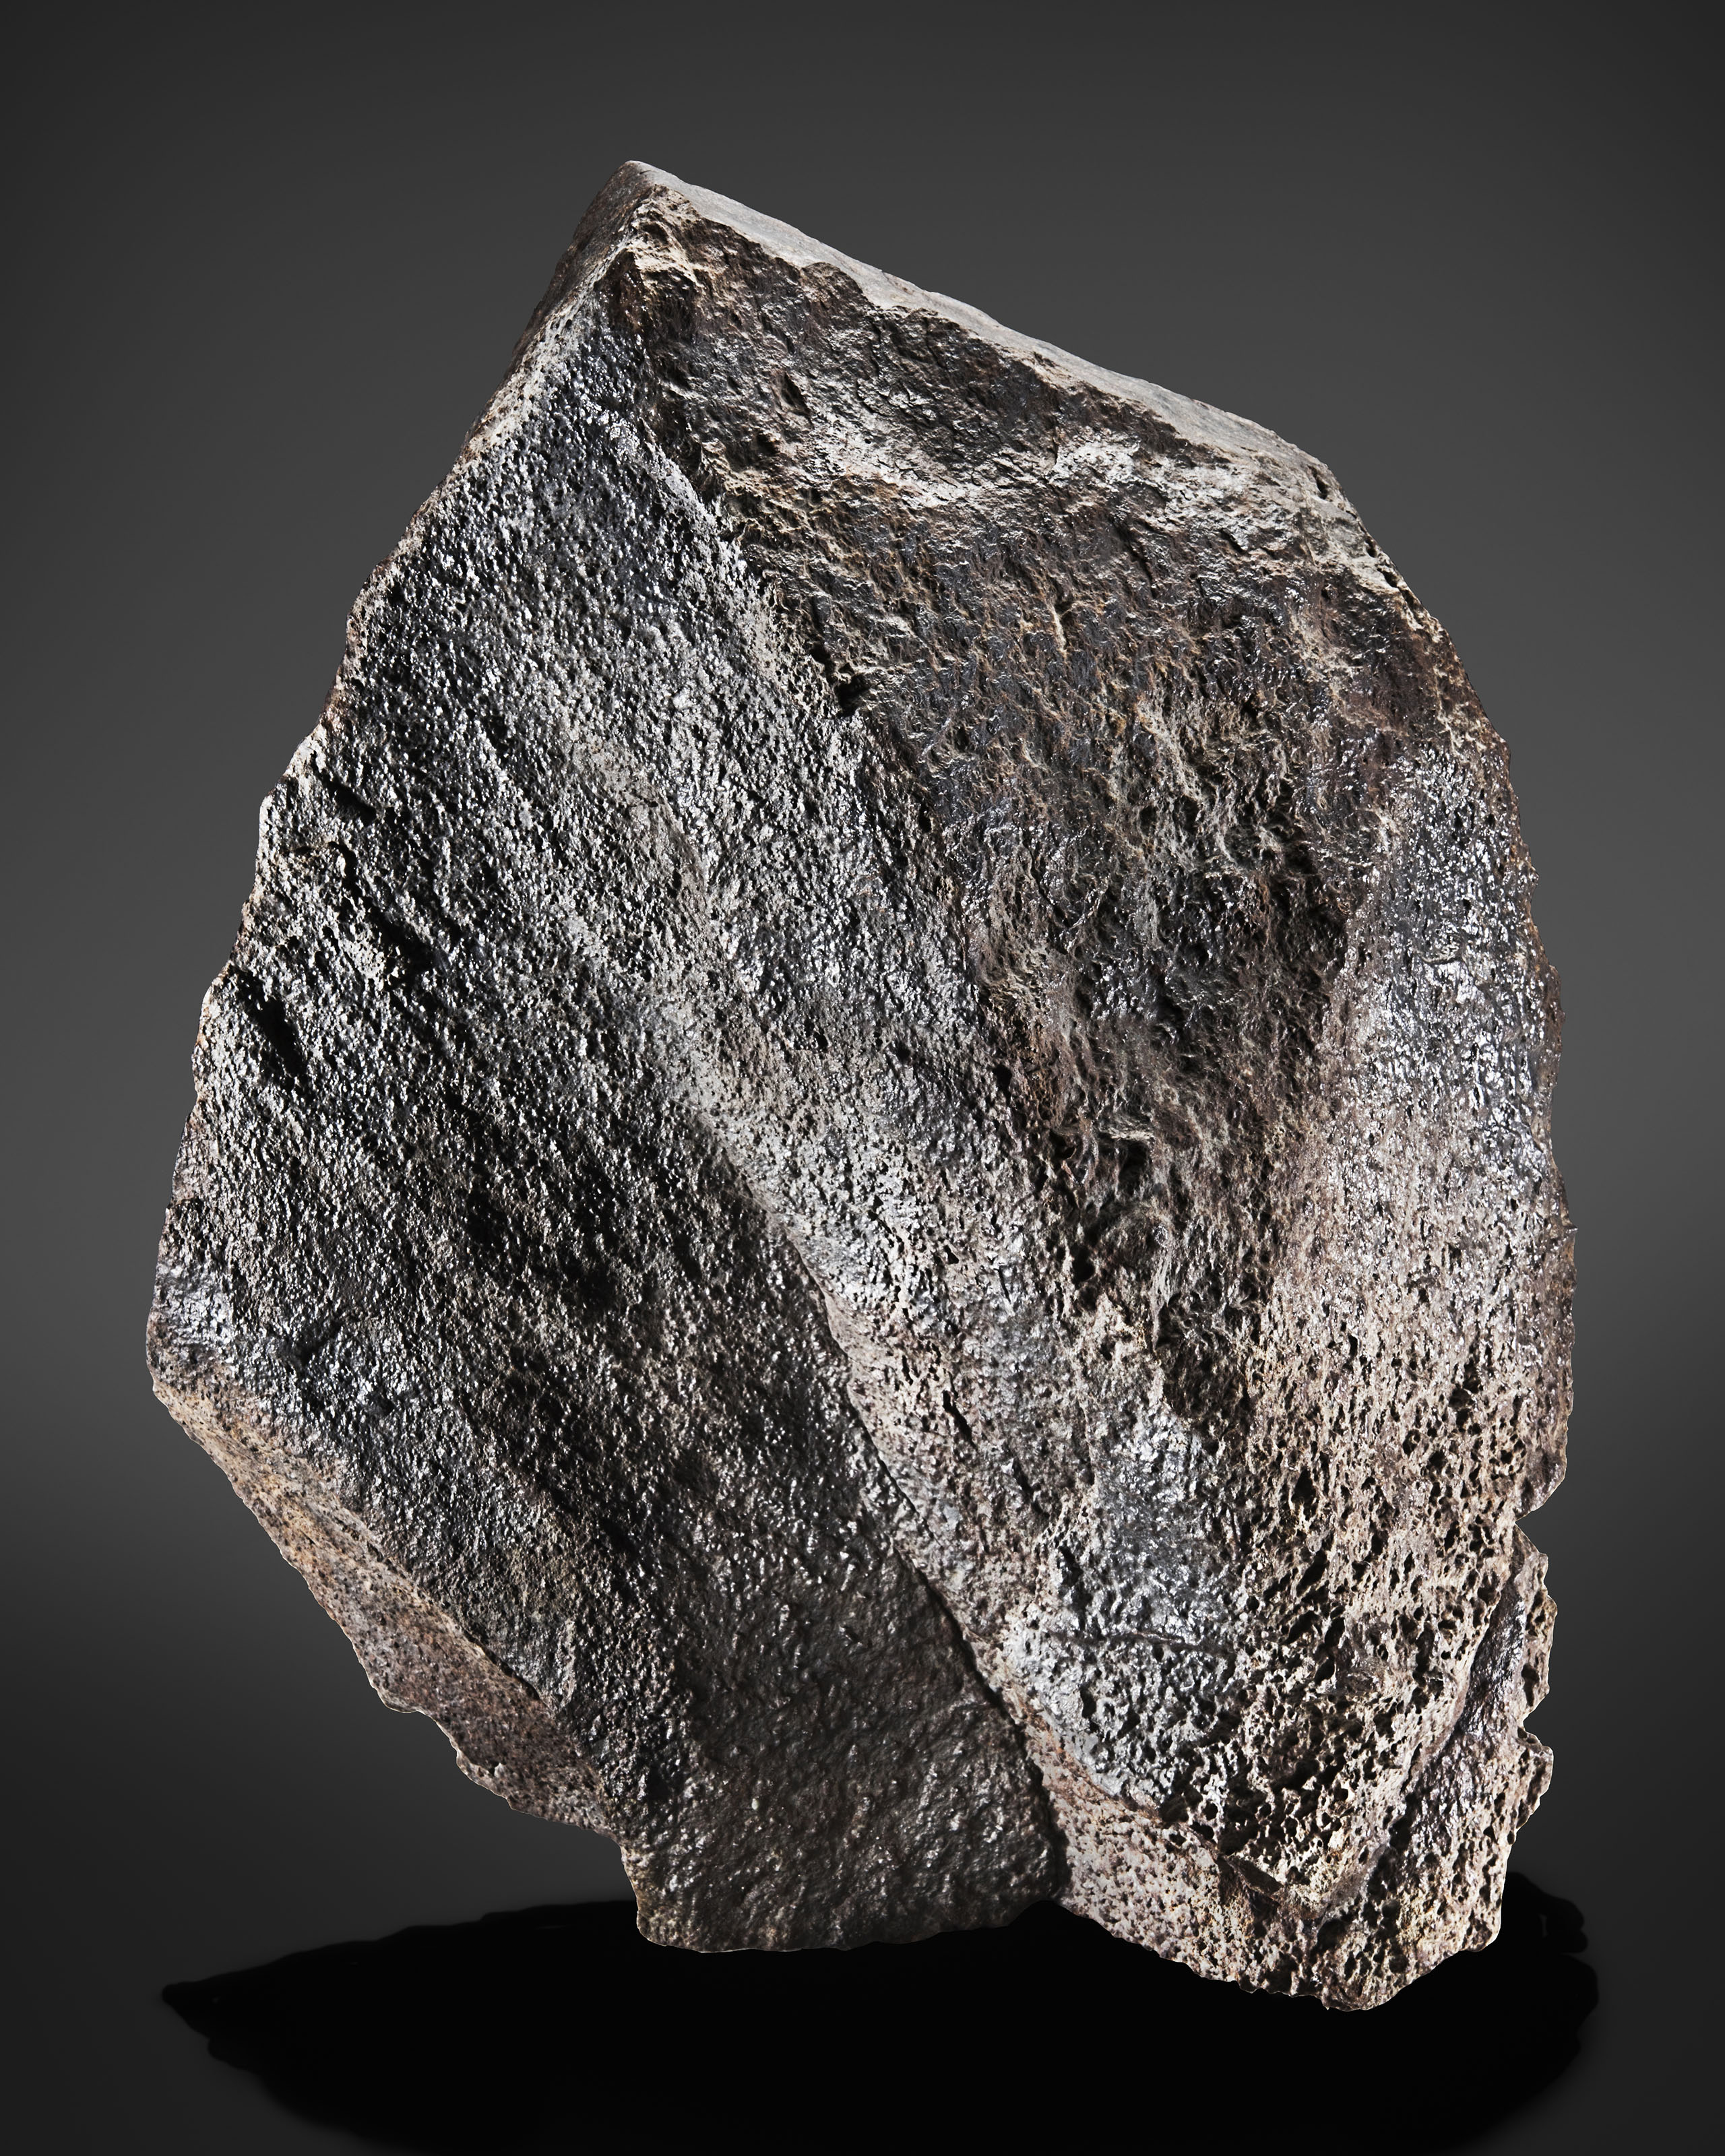 LARGE DECORATIVE STONE METEORITE NWA 11584